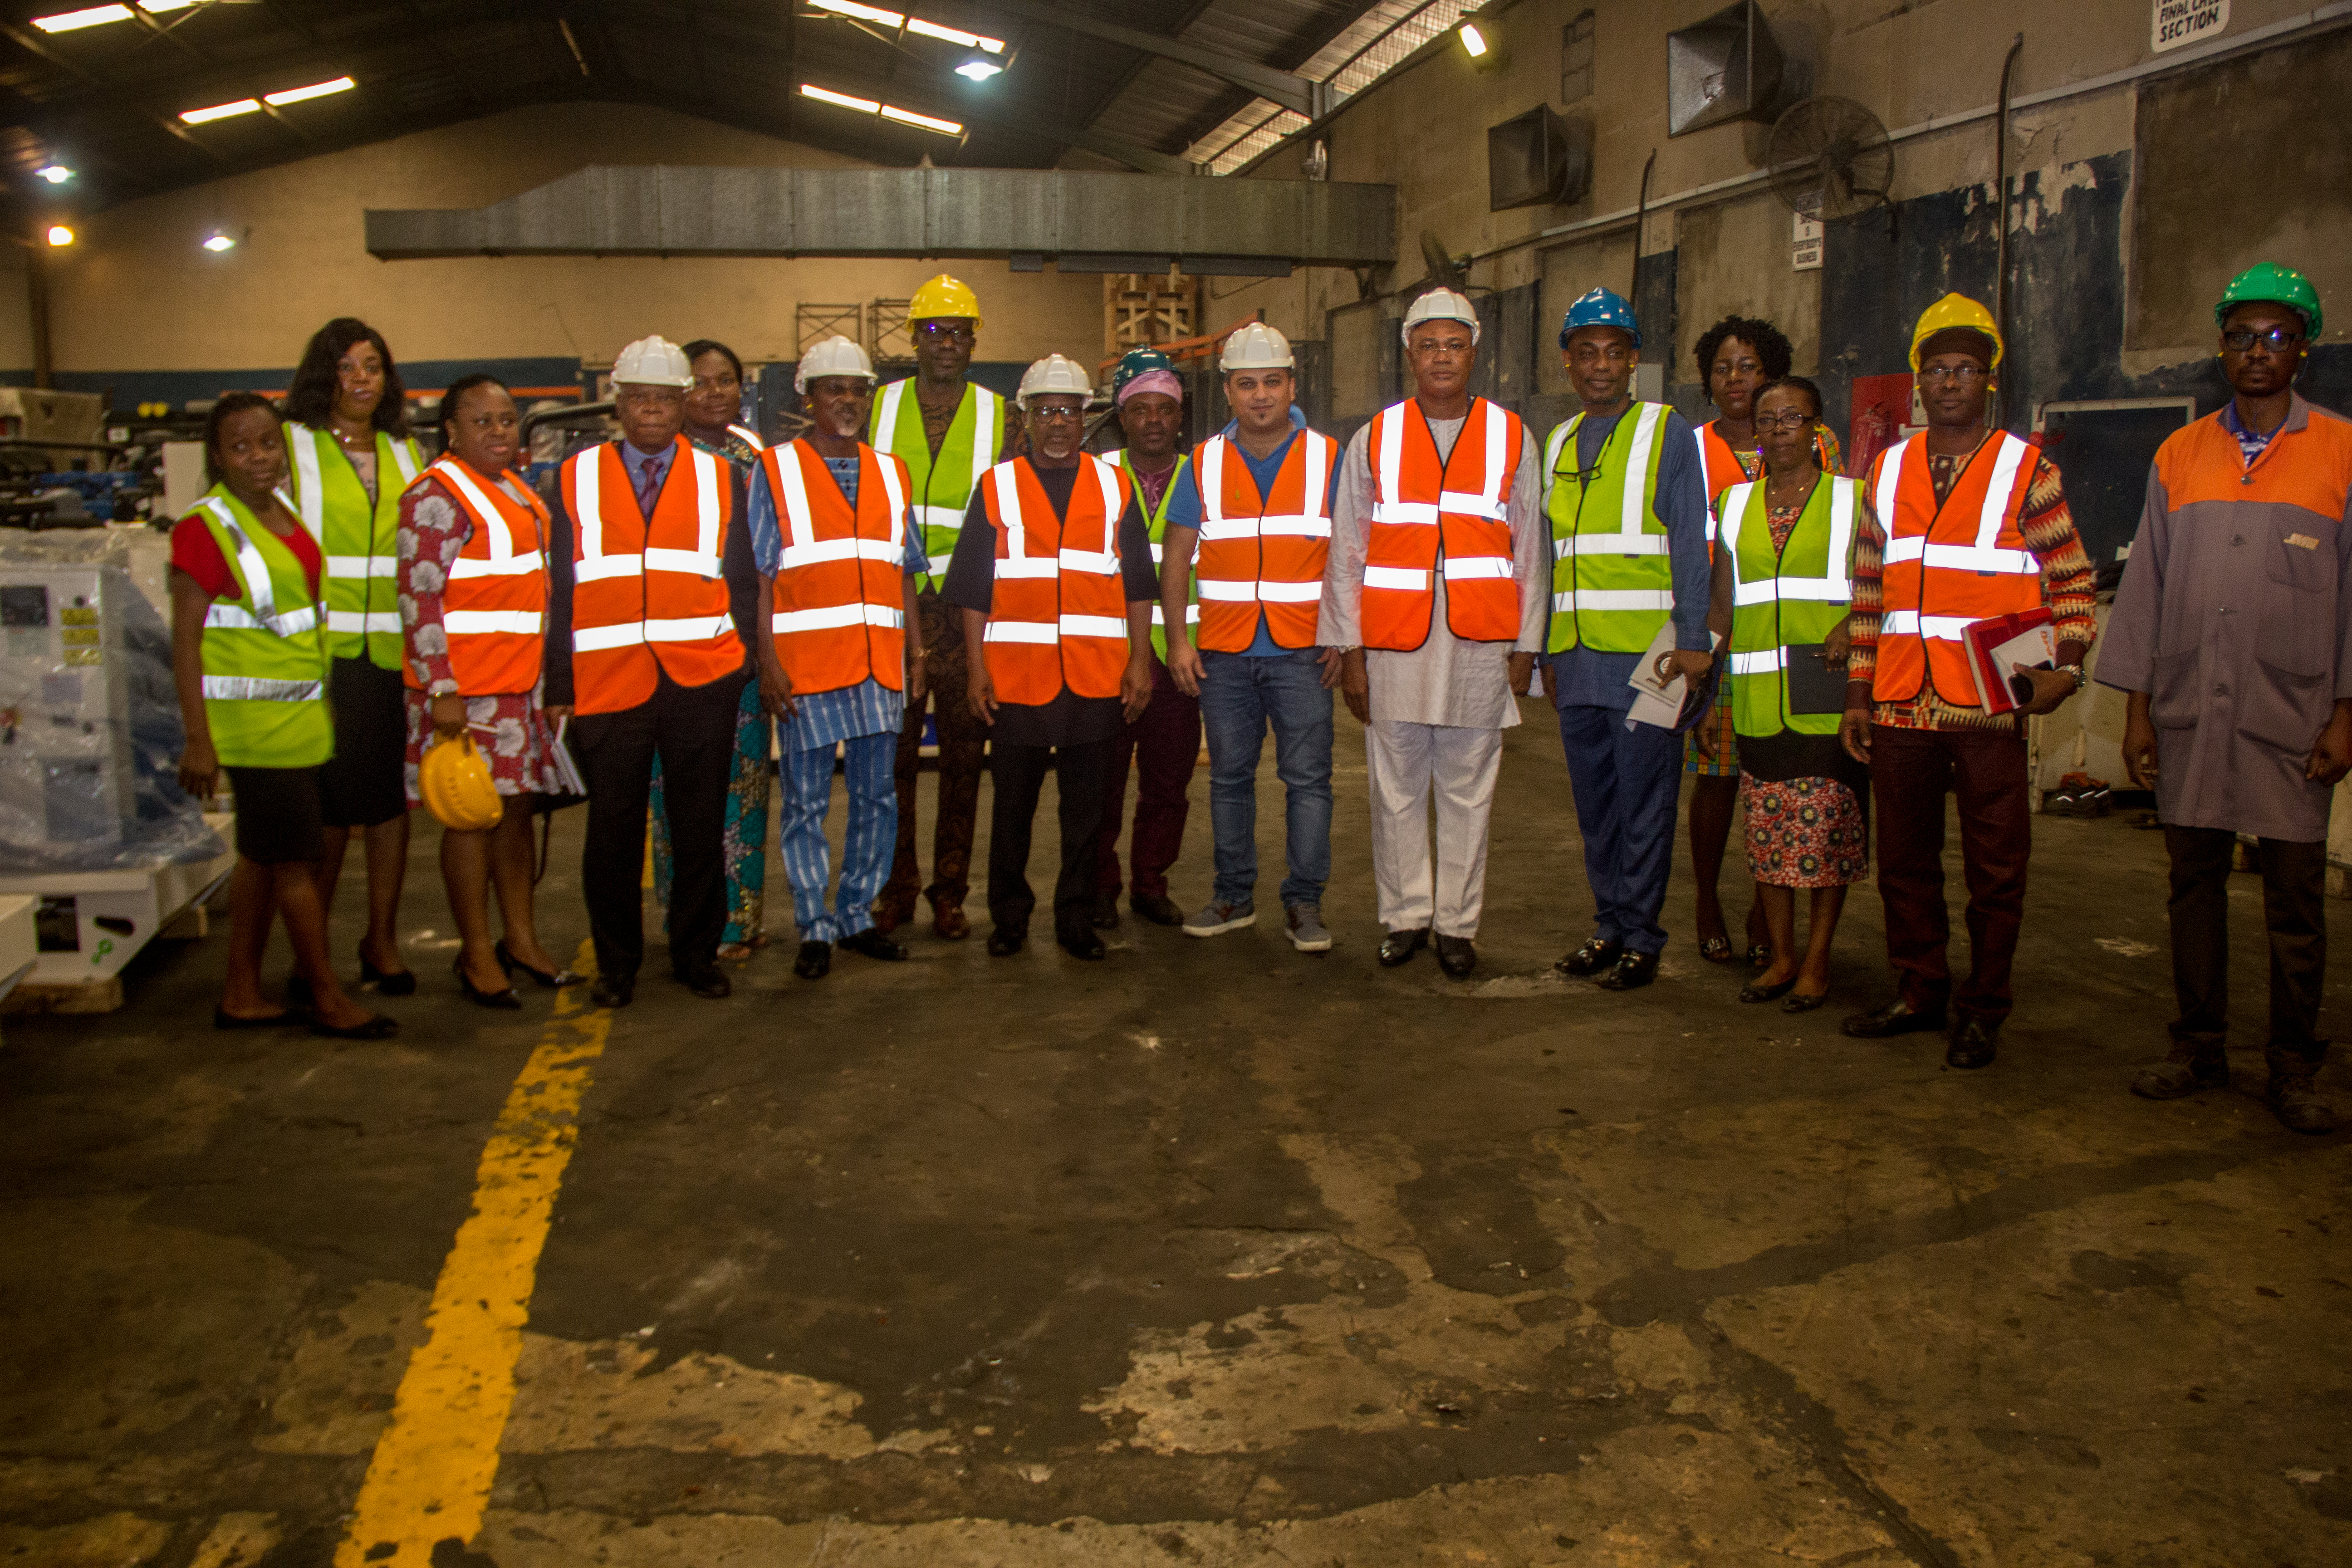 A group photograph at JMG factory shortly after the courtesy visit by MAN President